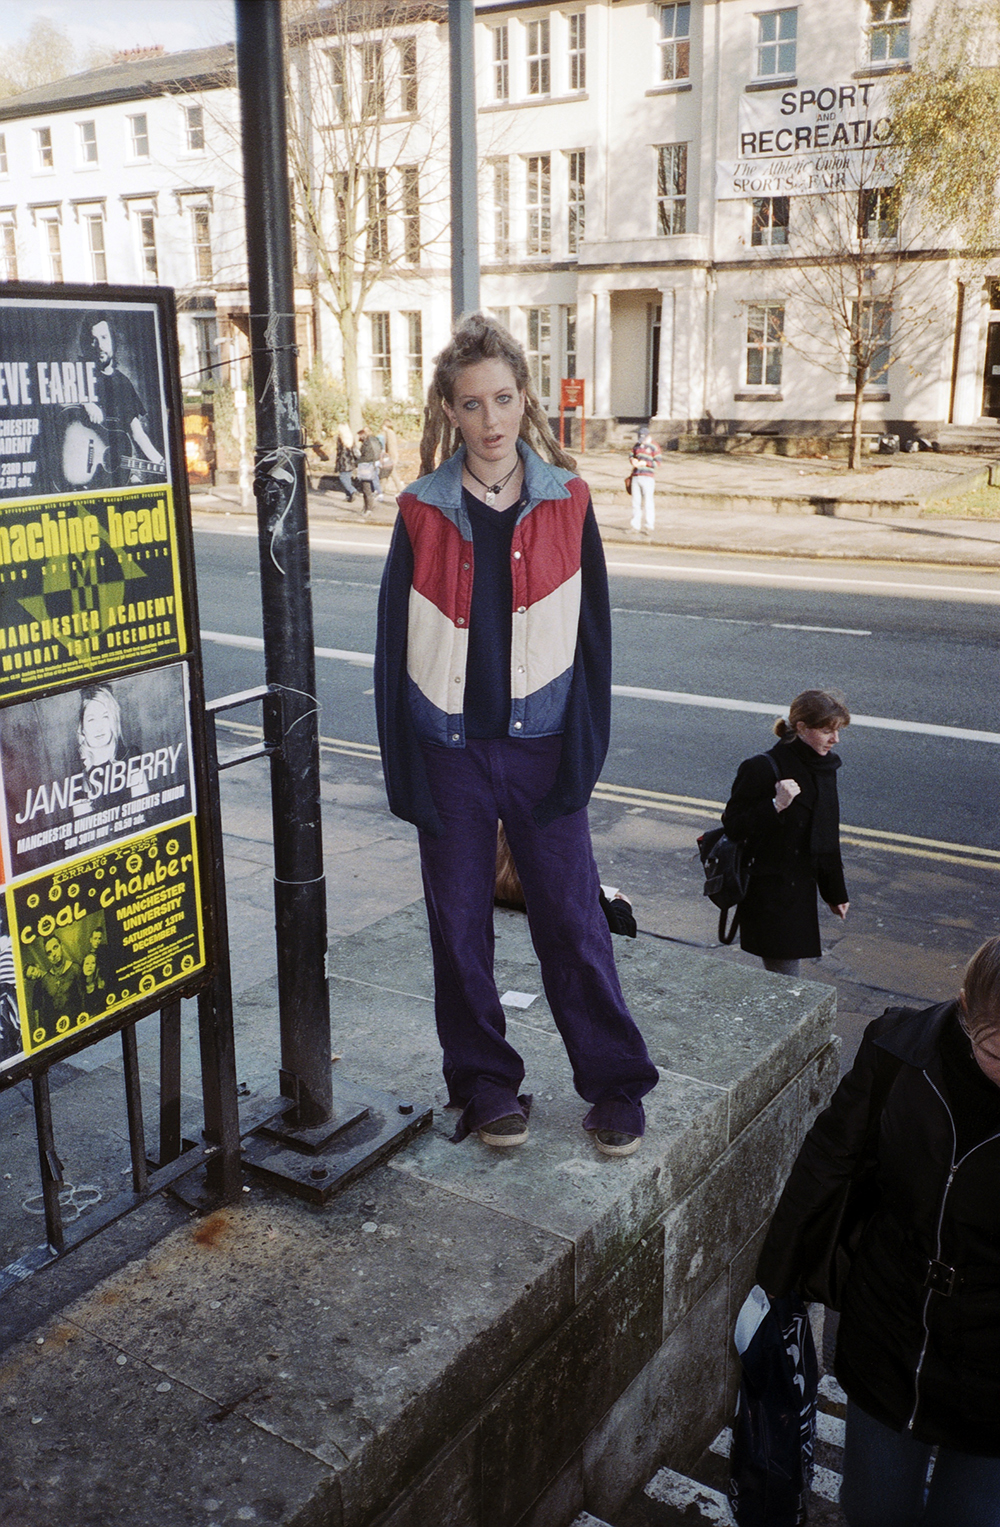 Photograph by Jason Evans, Untitled, Manchester, 1997